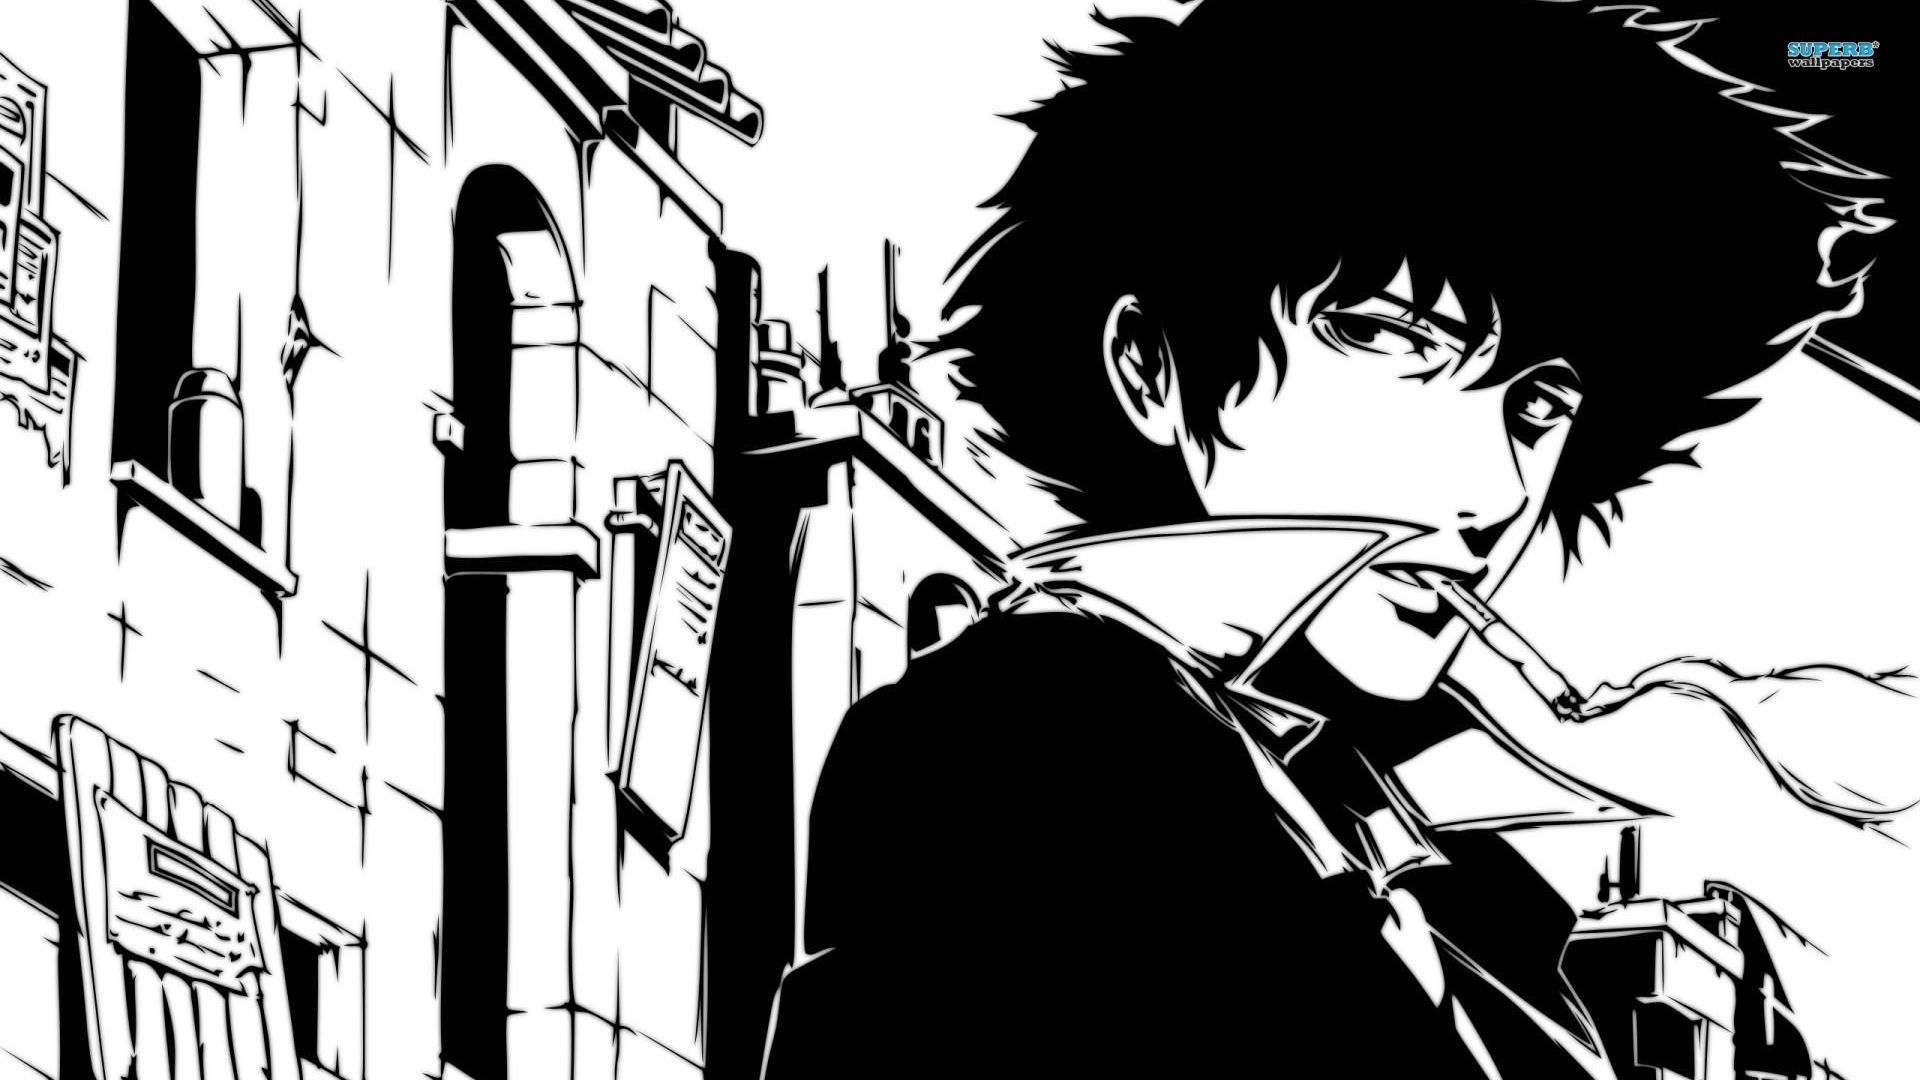 Cowboy Bebop Spike Wallpaper Cowboy Bebop Wallpapers Cowboy Bebop Anime Cowboy Bebop